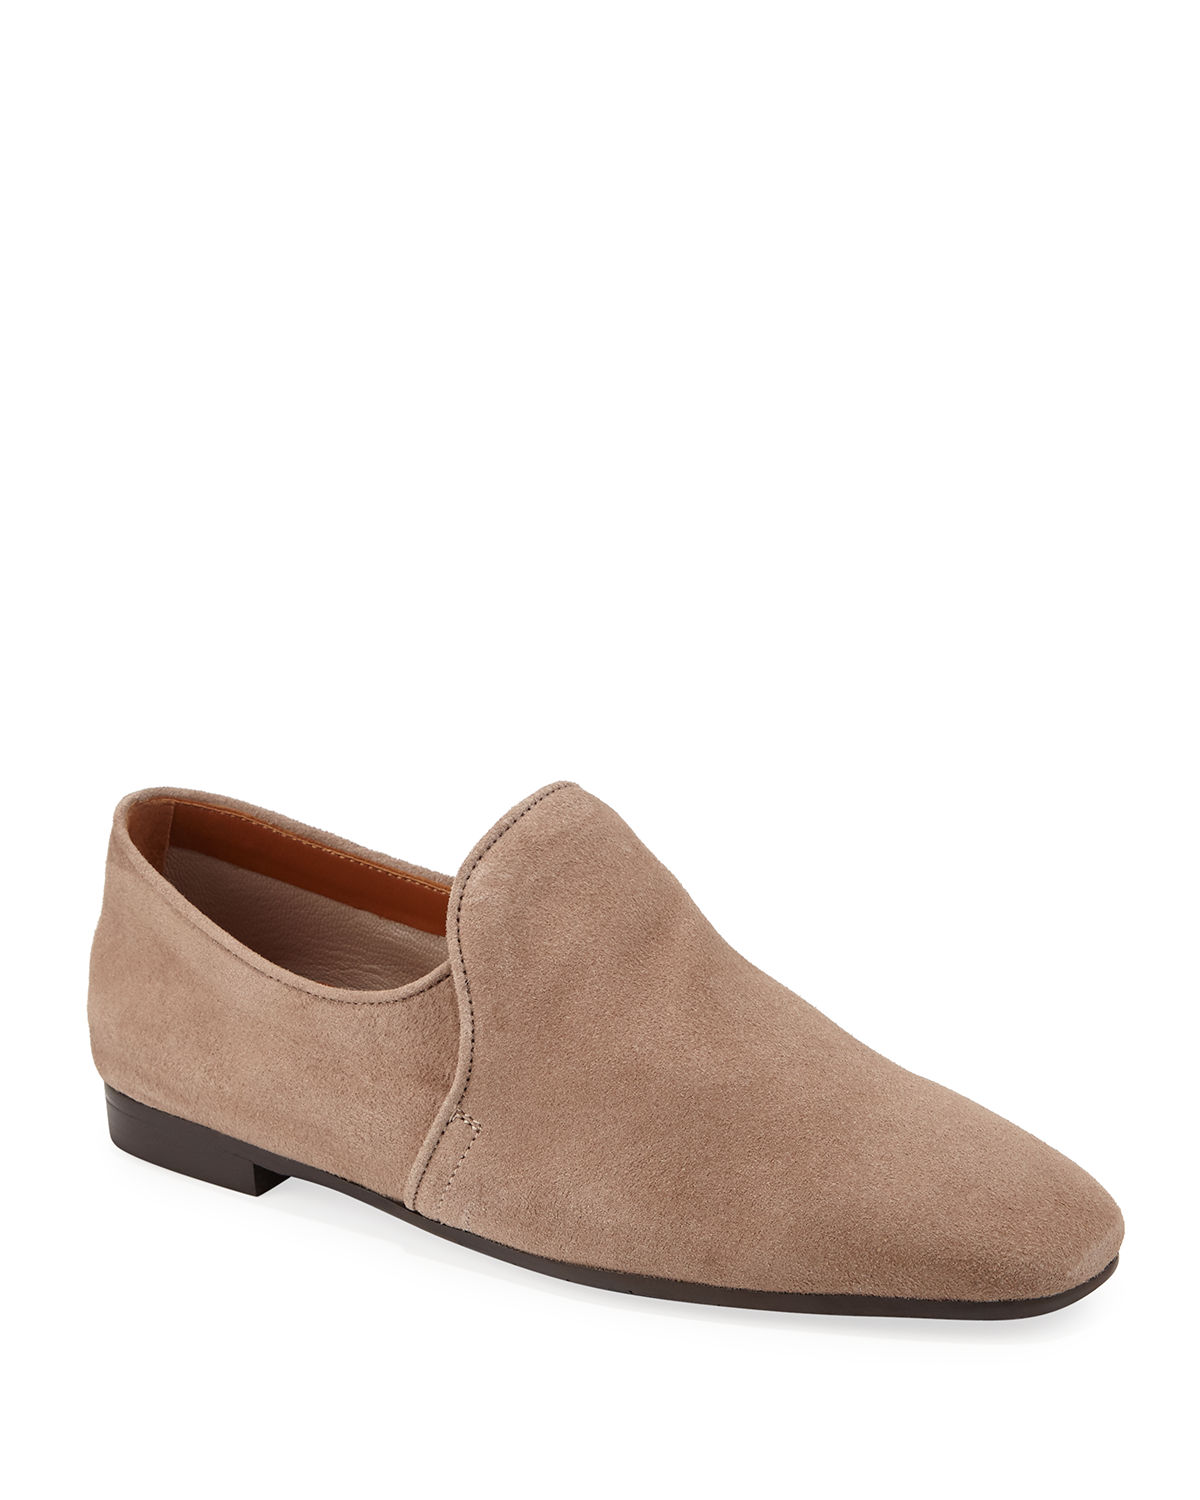 Revy Flat Calf Suede Loafers